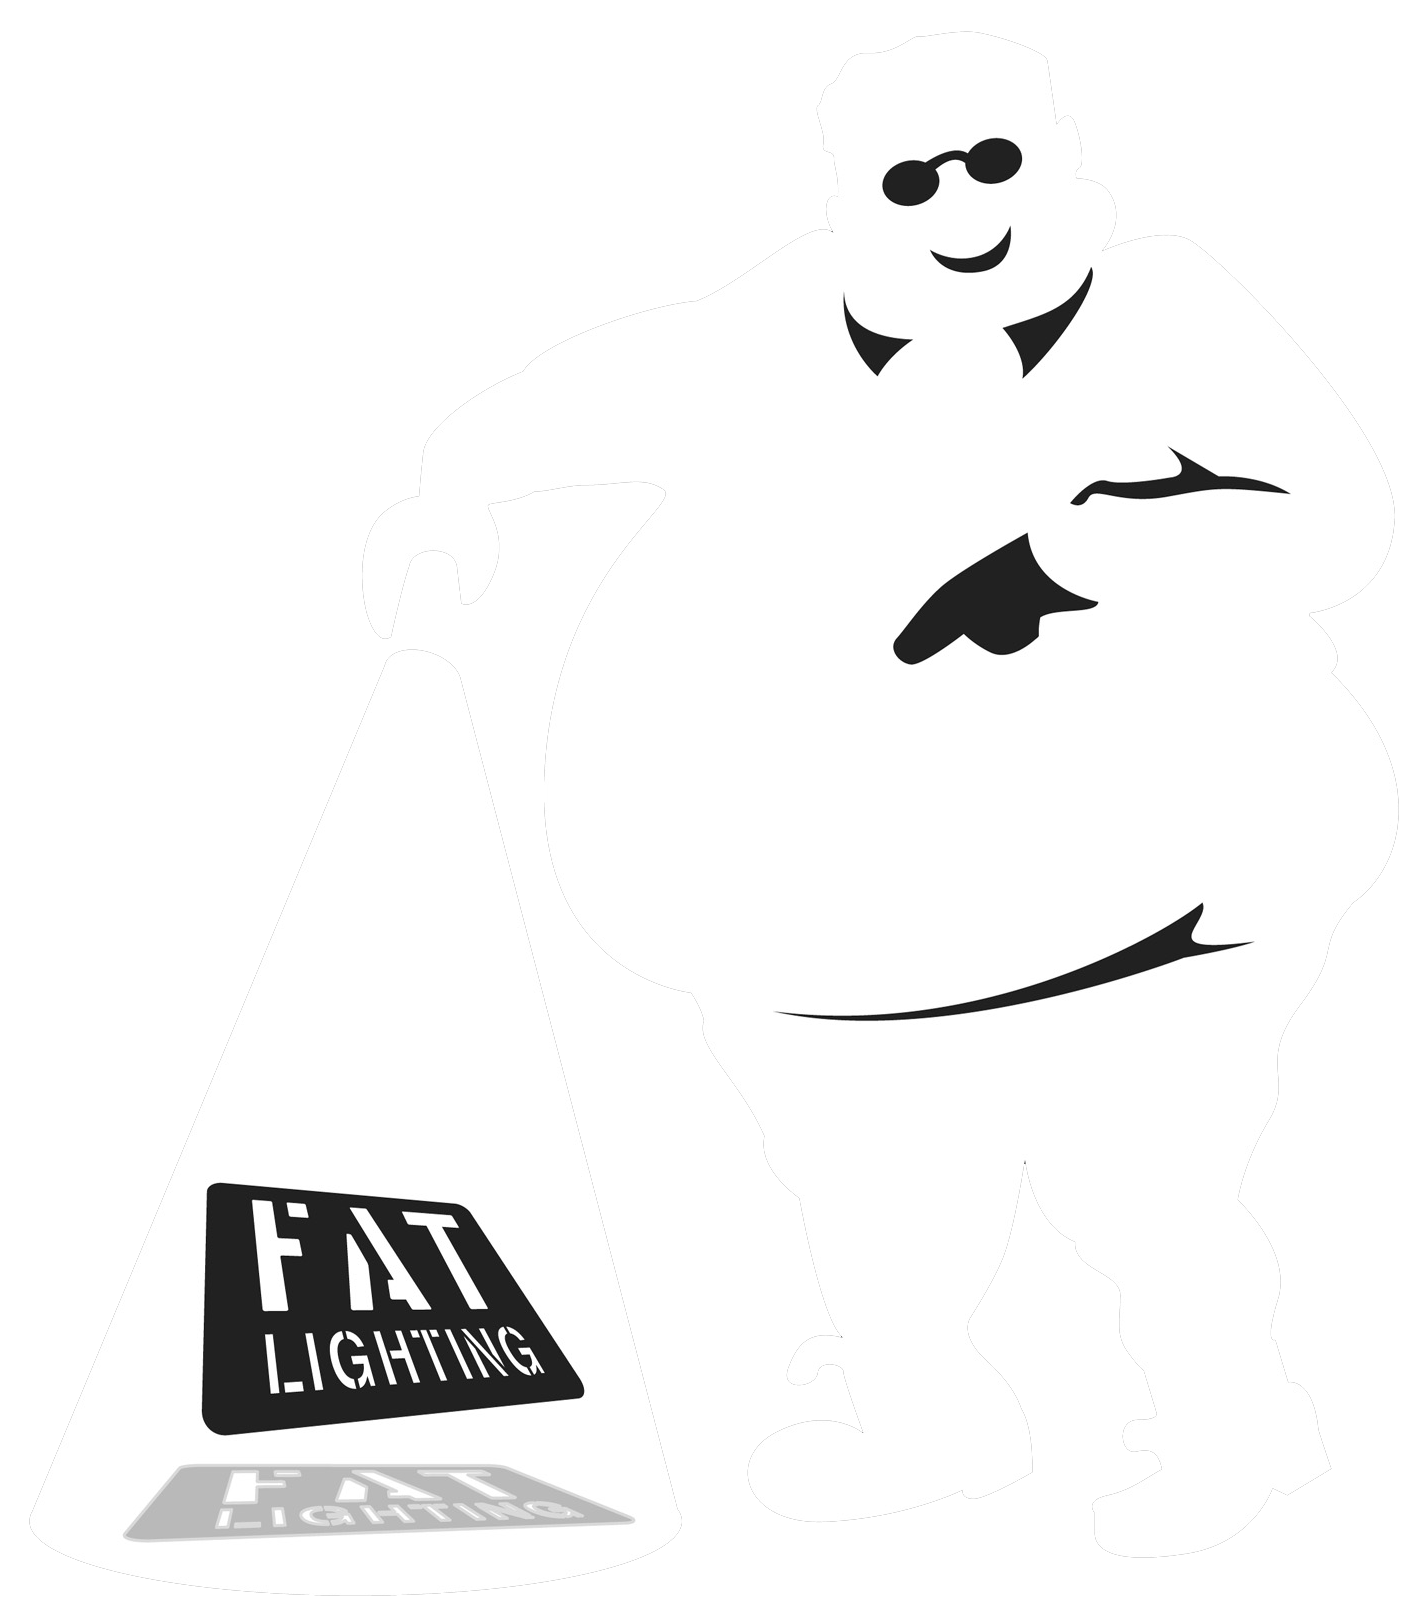 Fat Lighting